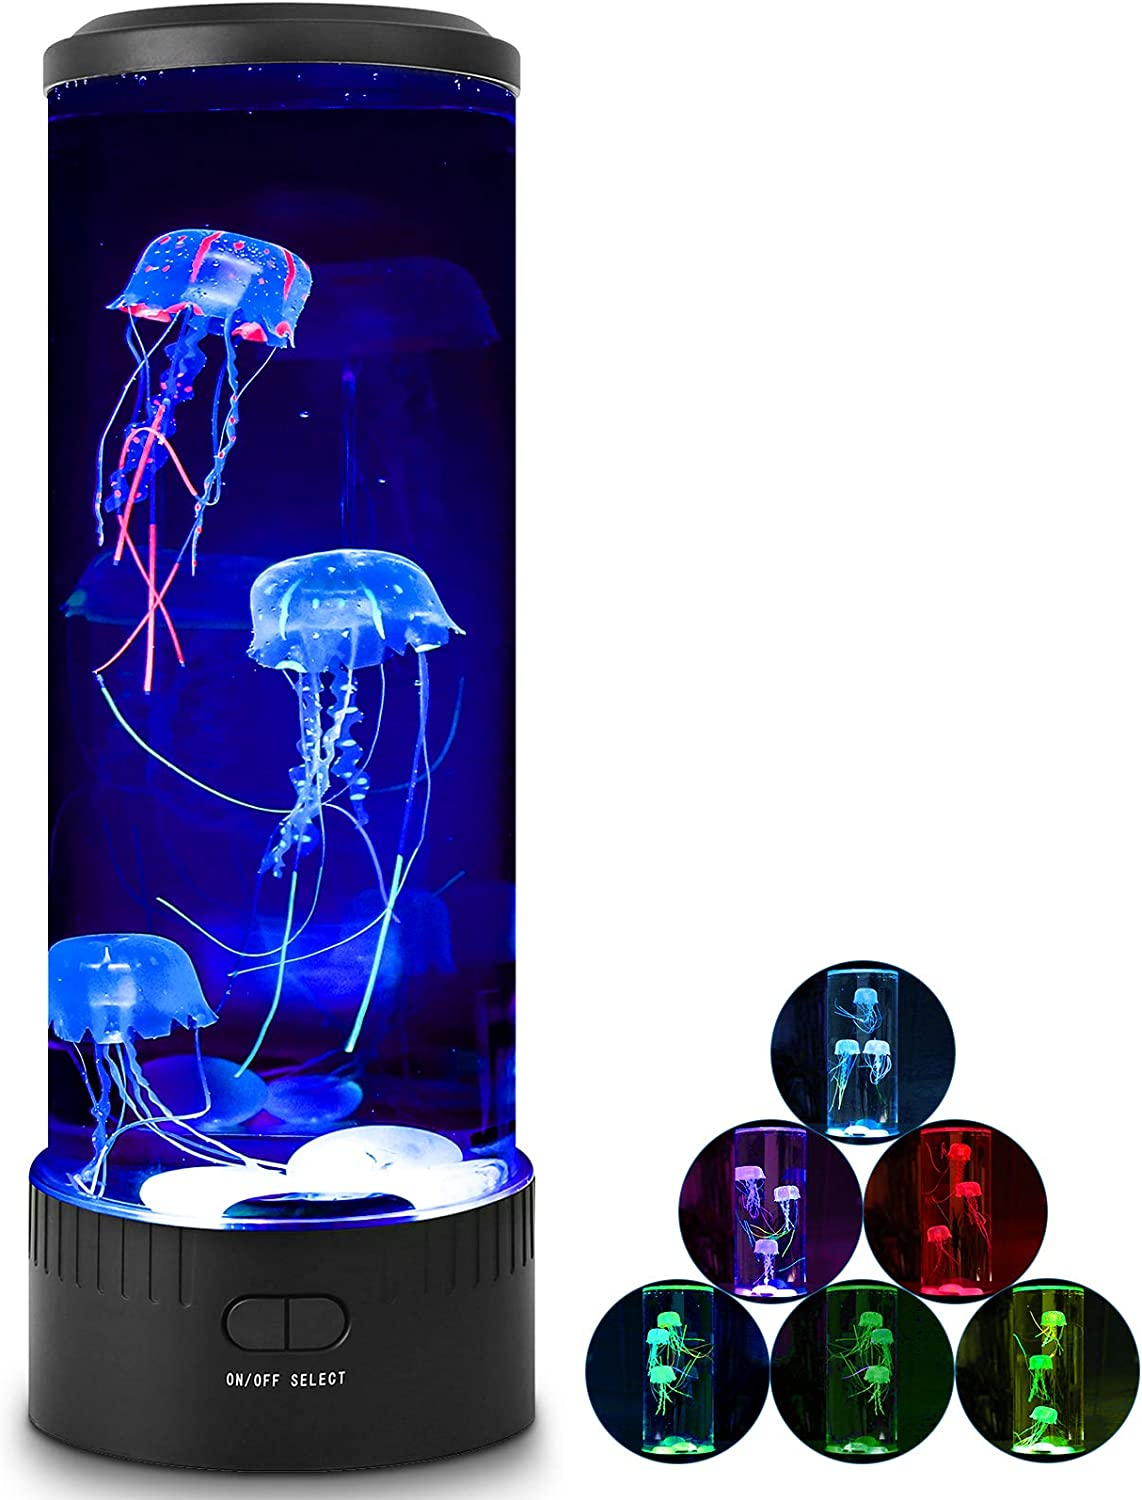 Recoty Jellyfish Lamp with 7 Color Changing Light Lava Lamp for Kids, Jellyfish Aquarium Tank Lamp with Agate stones for Home Office